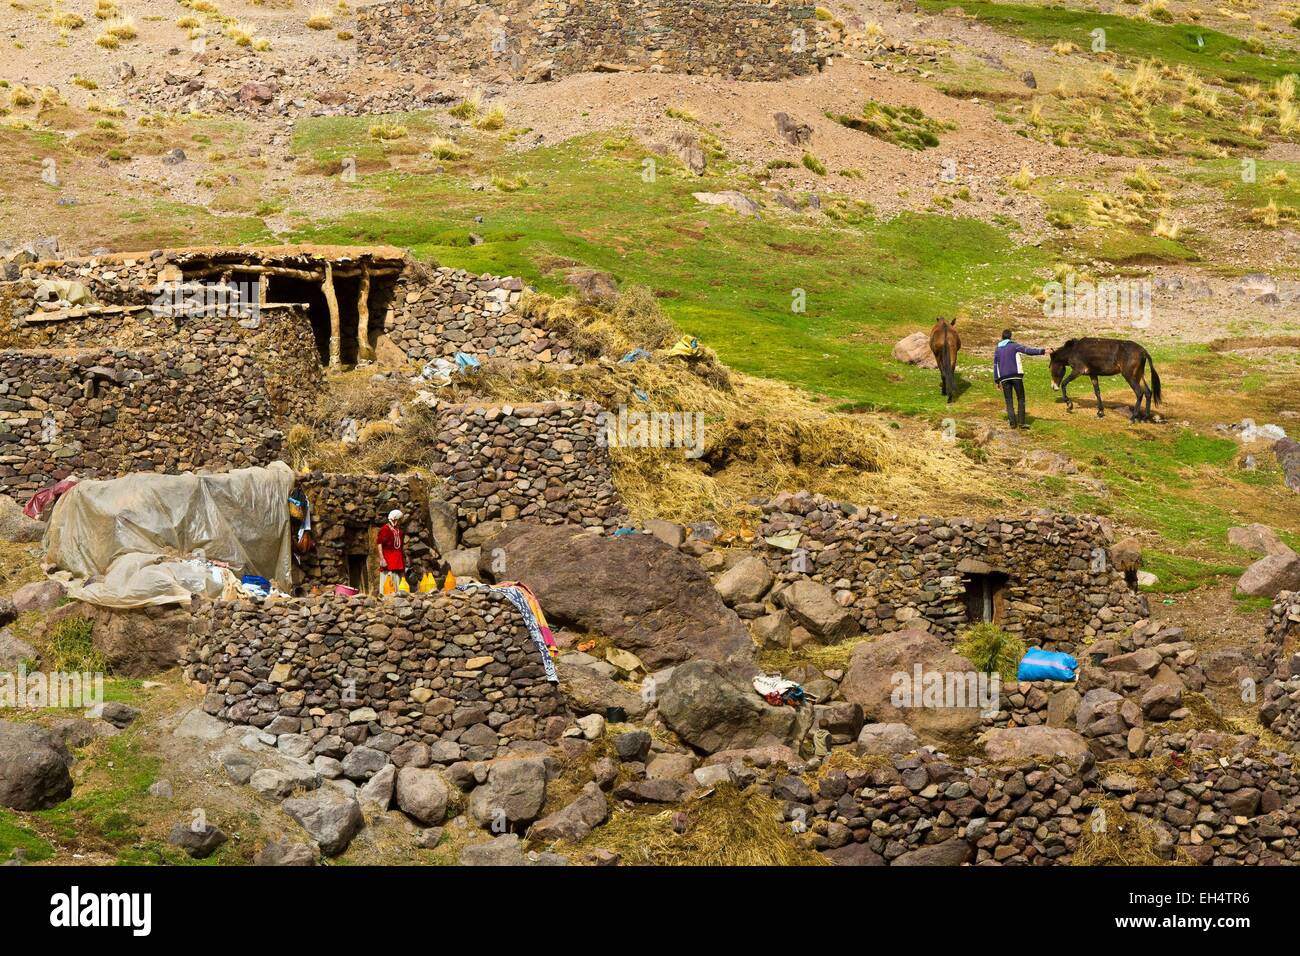 Morocco, High Atlas, Toubkal National Park, Ourika Valley, Berbers to sheepfolds Likemt - Stock Image